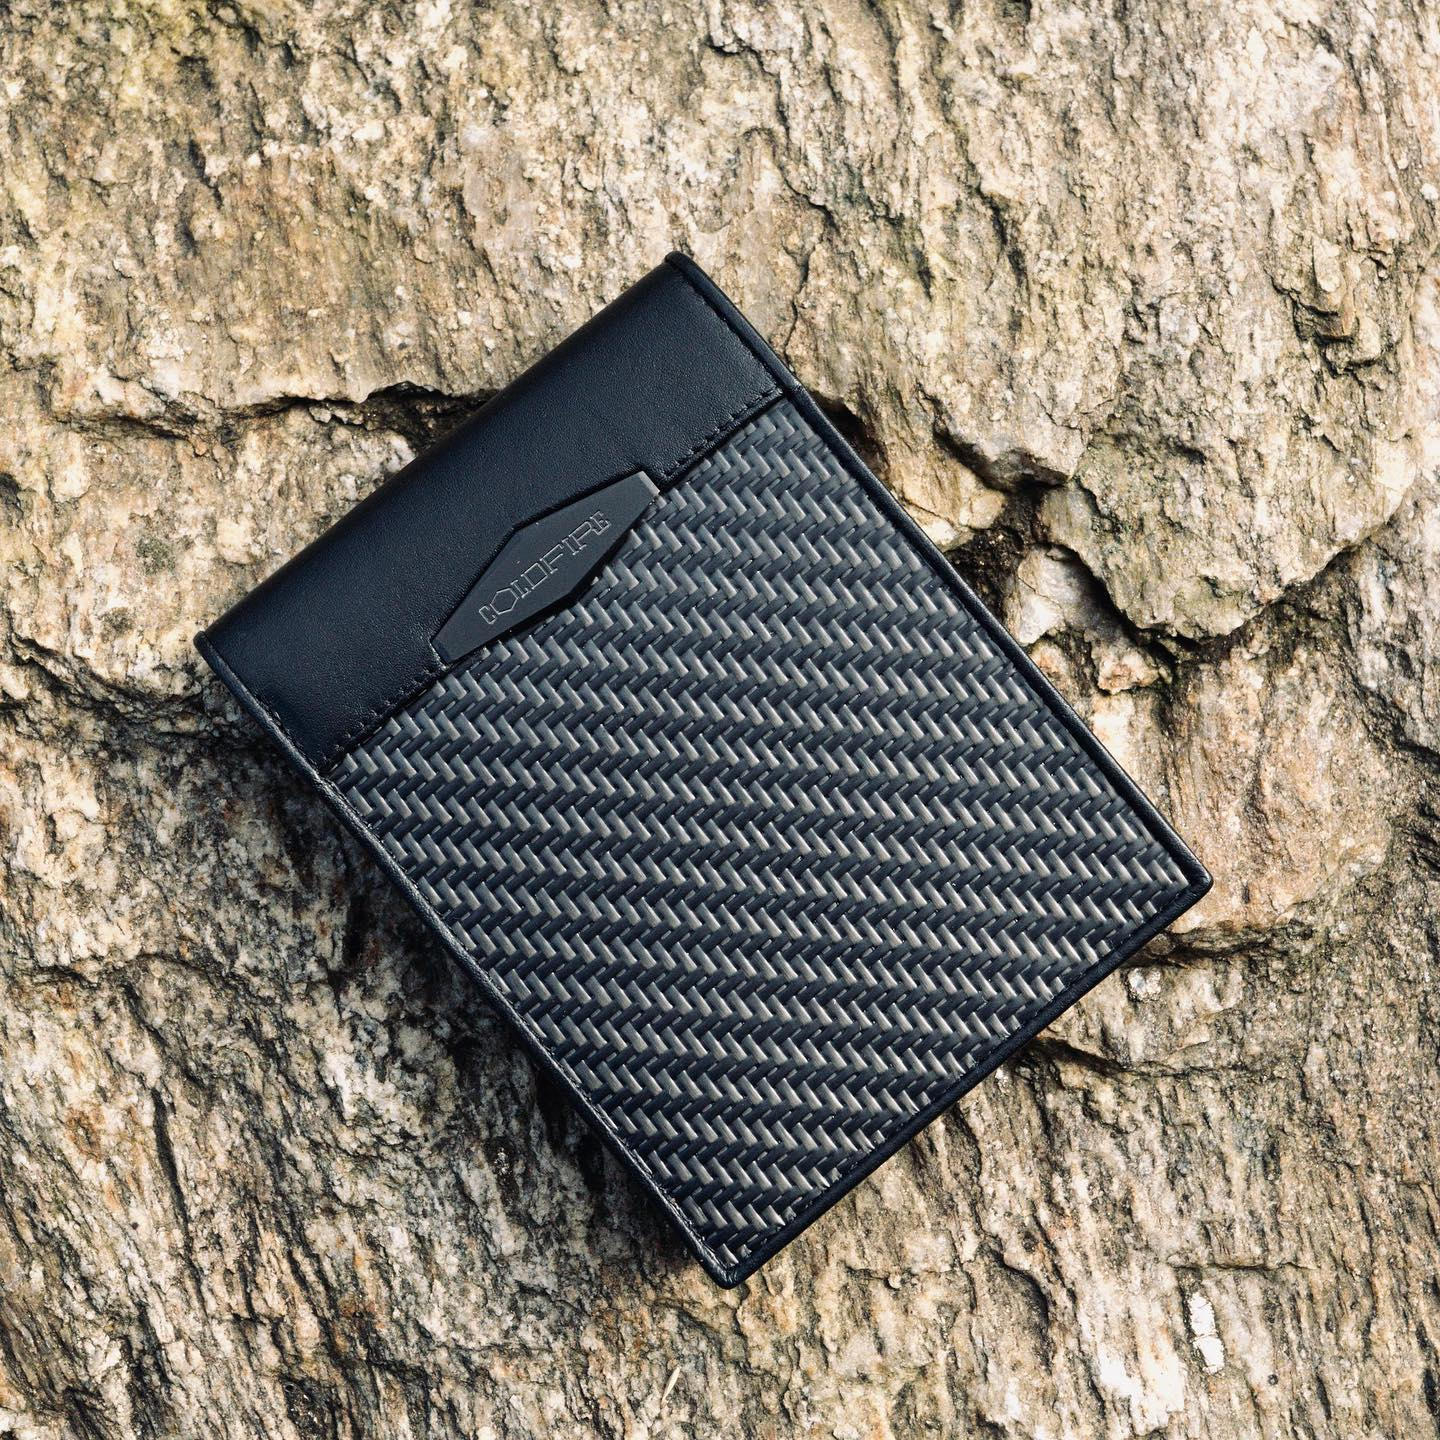 Coldfire Carbon Fiber and Leather Tactical Grade Men's Leather Wallet